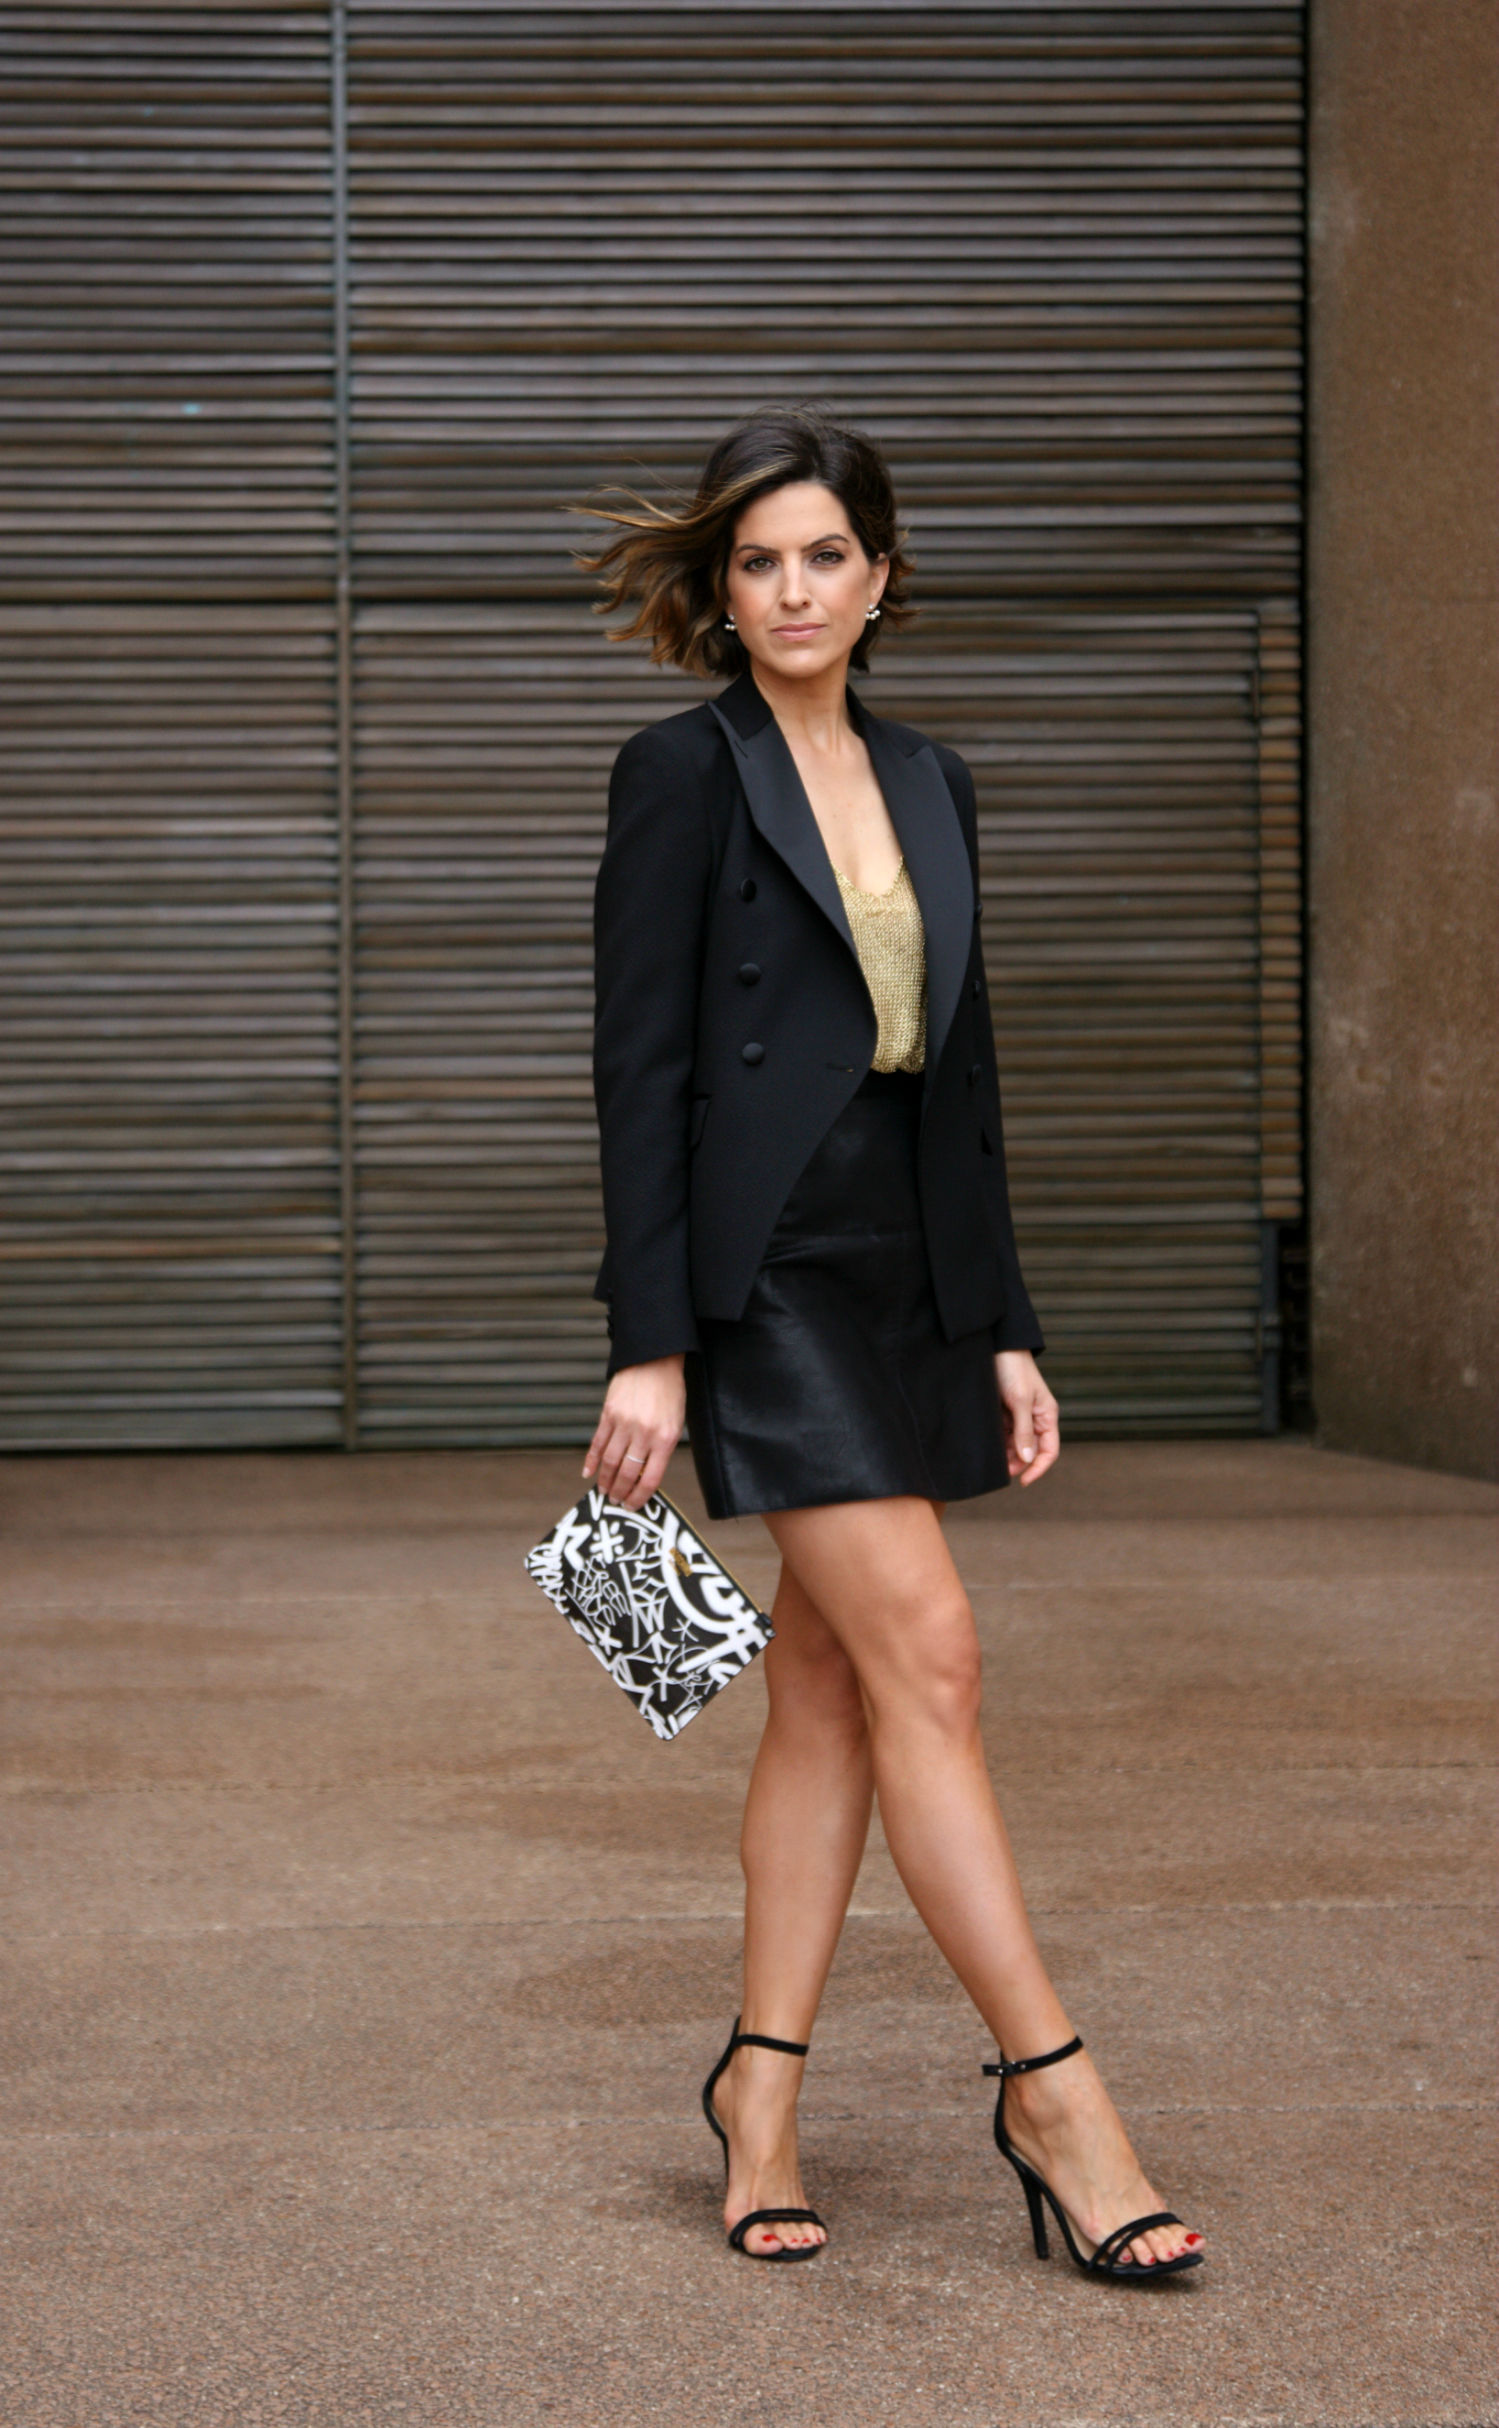 Tuxedo Jacket outfit Editorial